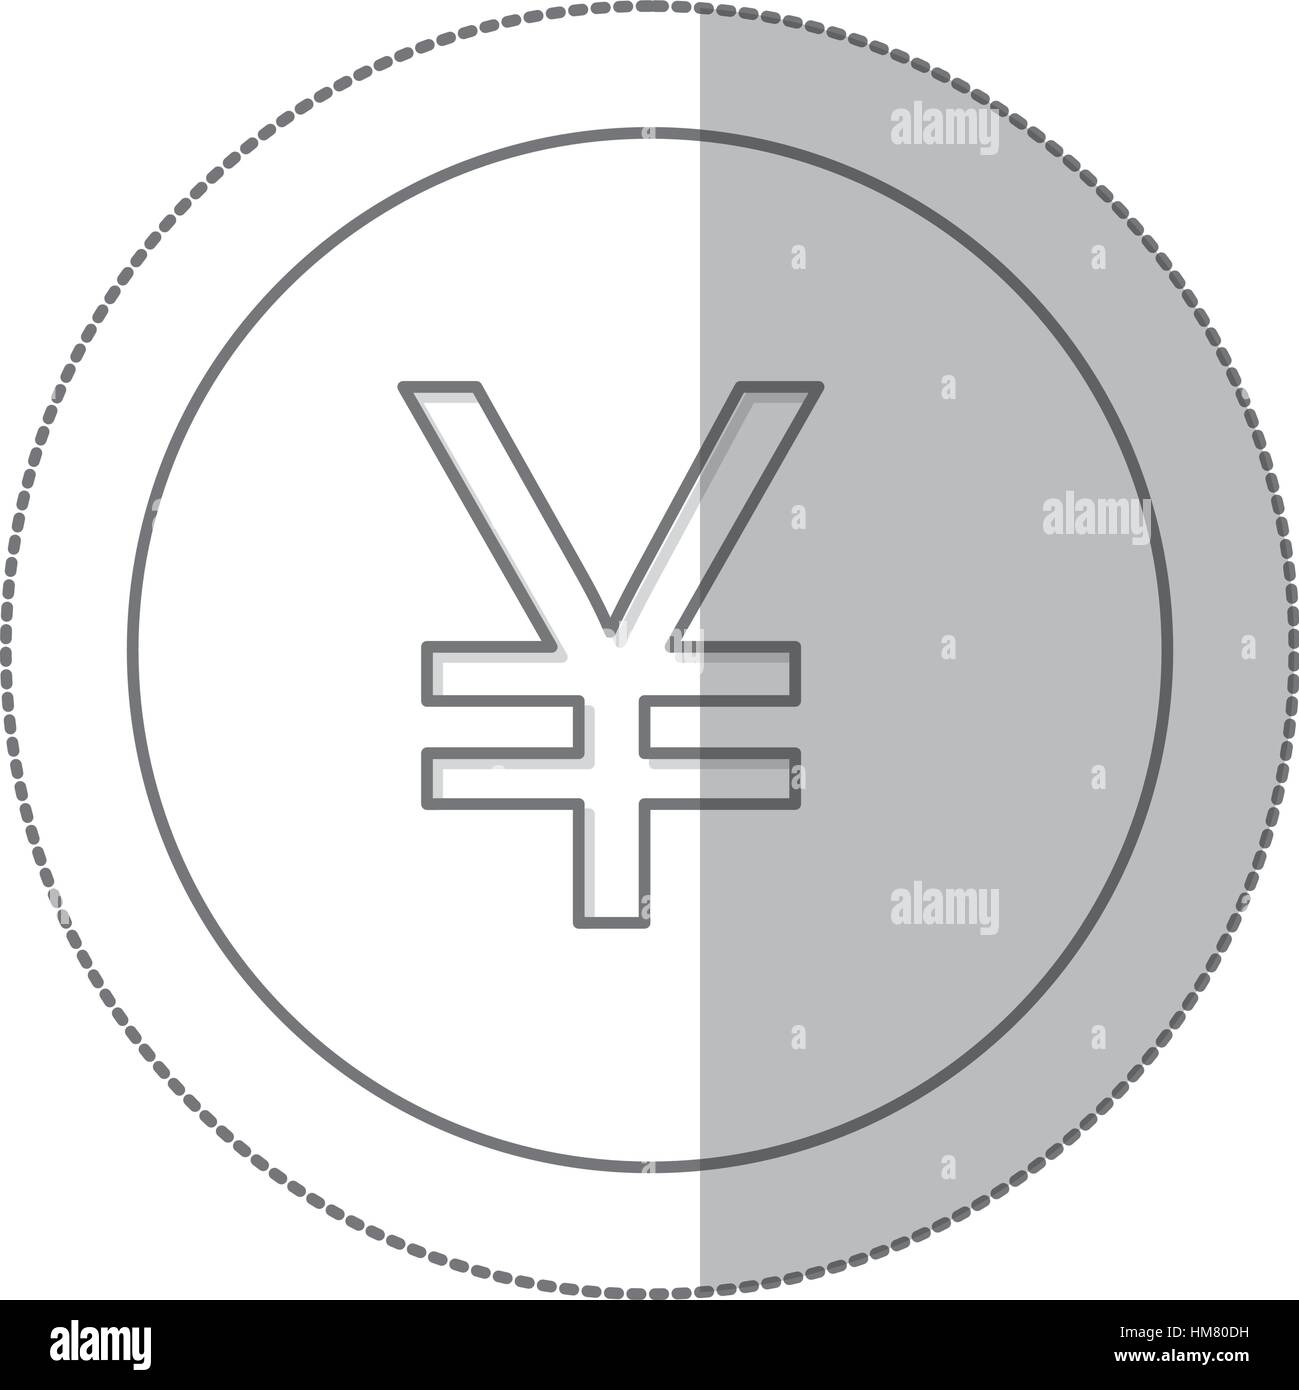 Middle shadow monochrome circle with currency symbol of china middle shadow monochrome circle with currency symbol of china vector illustration biocorpaavc Choice Image